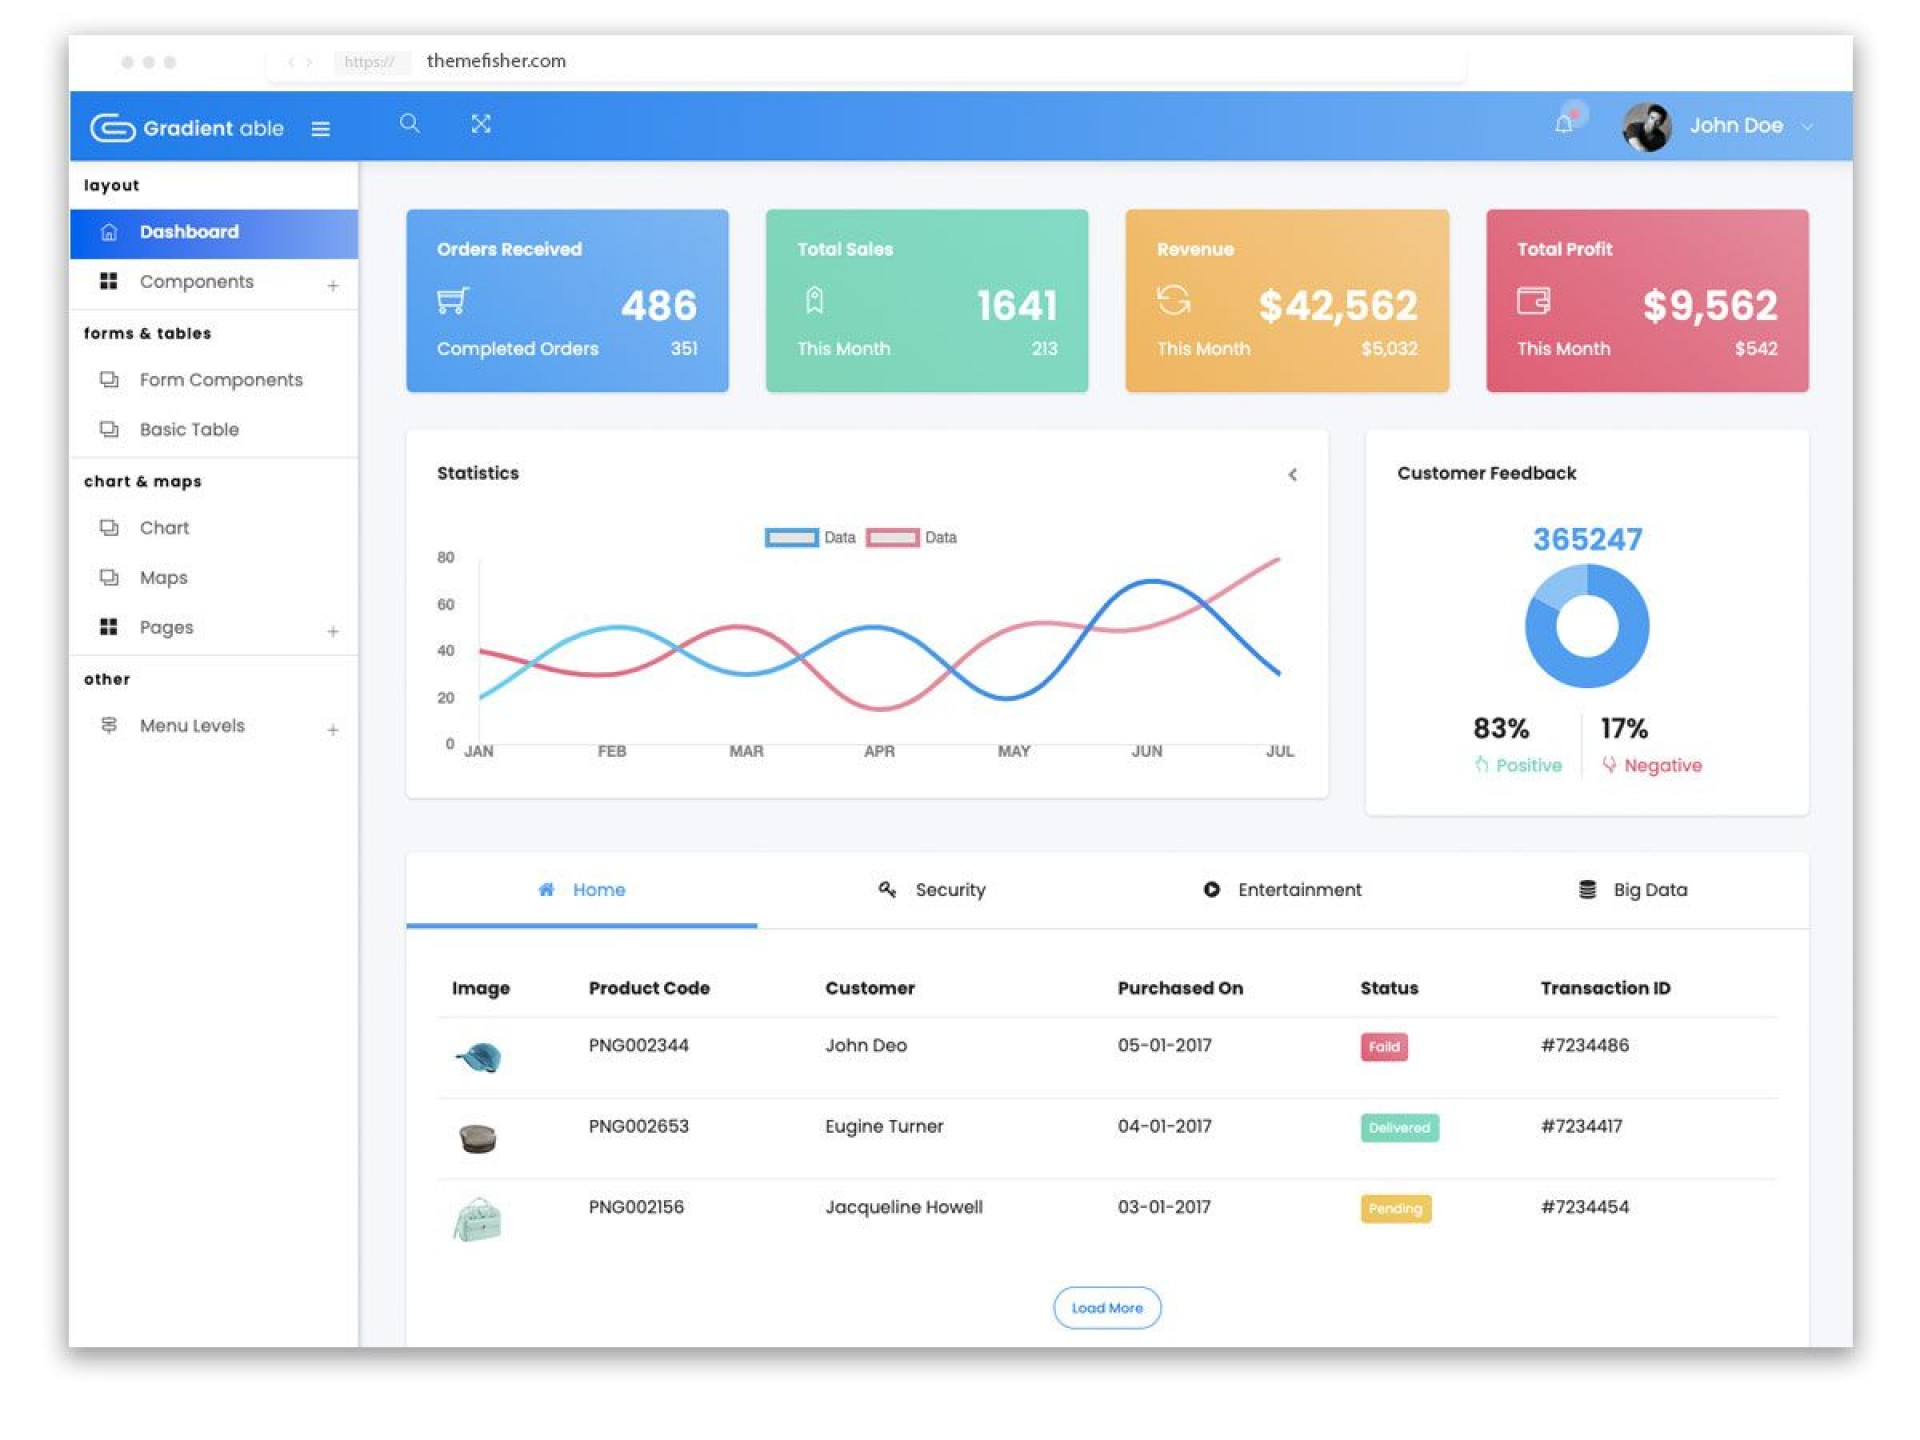 007 Phenomenal Project Management Html Template Free Download Concept 1920